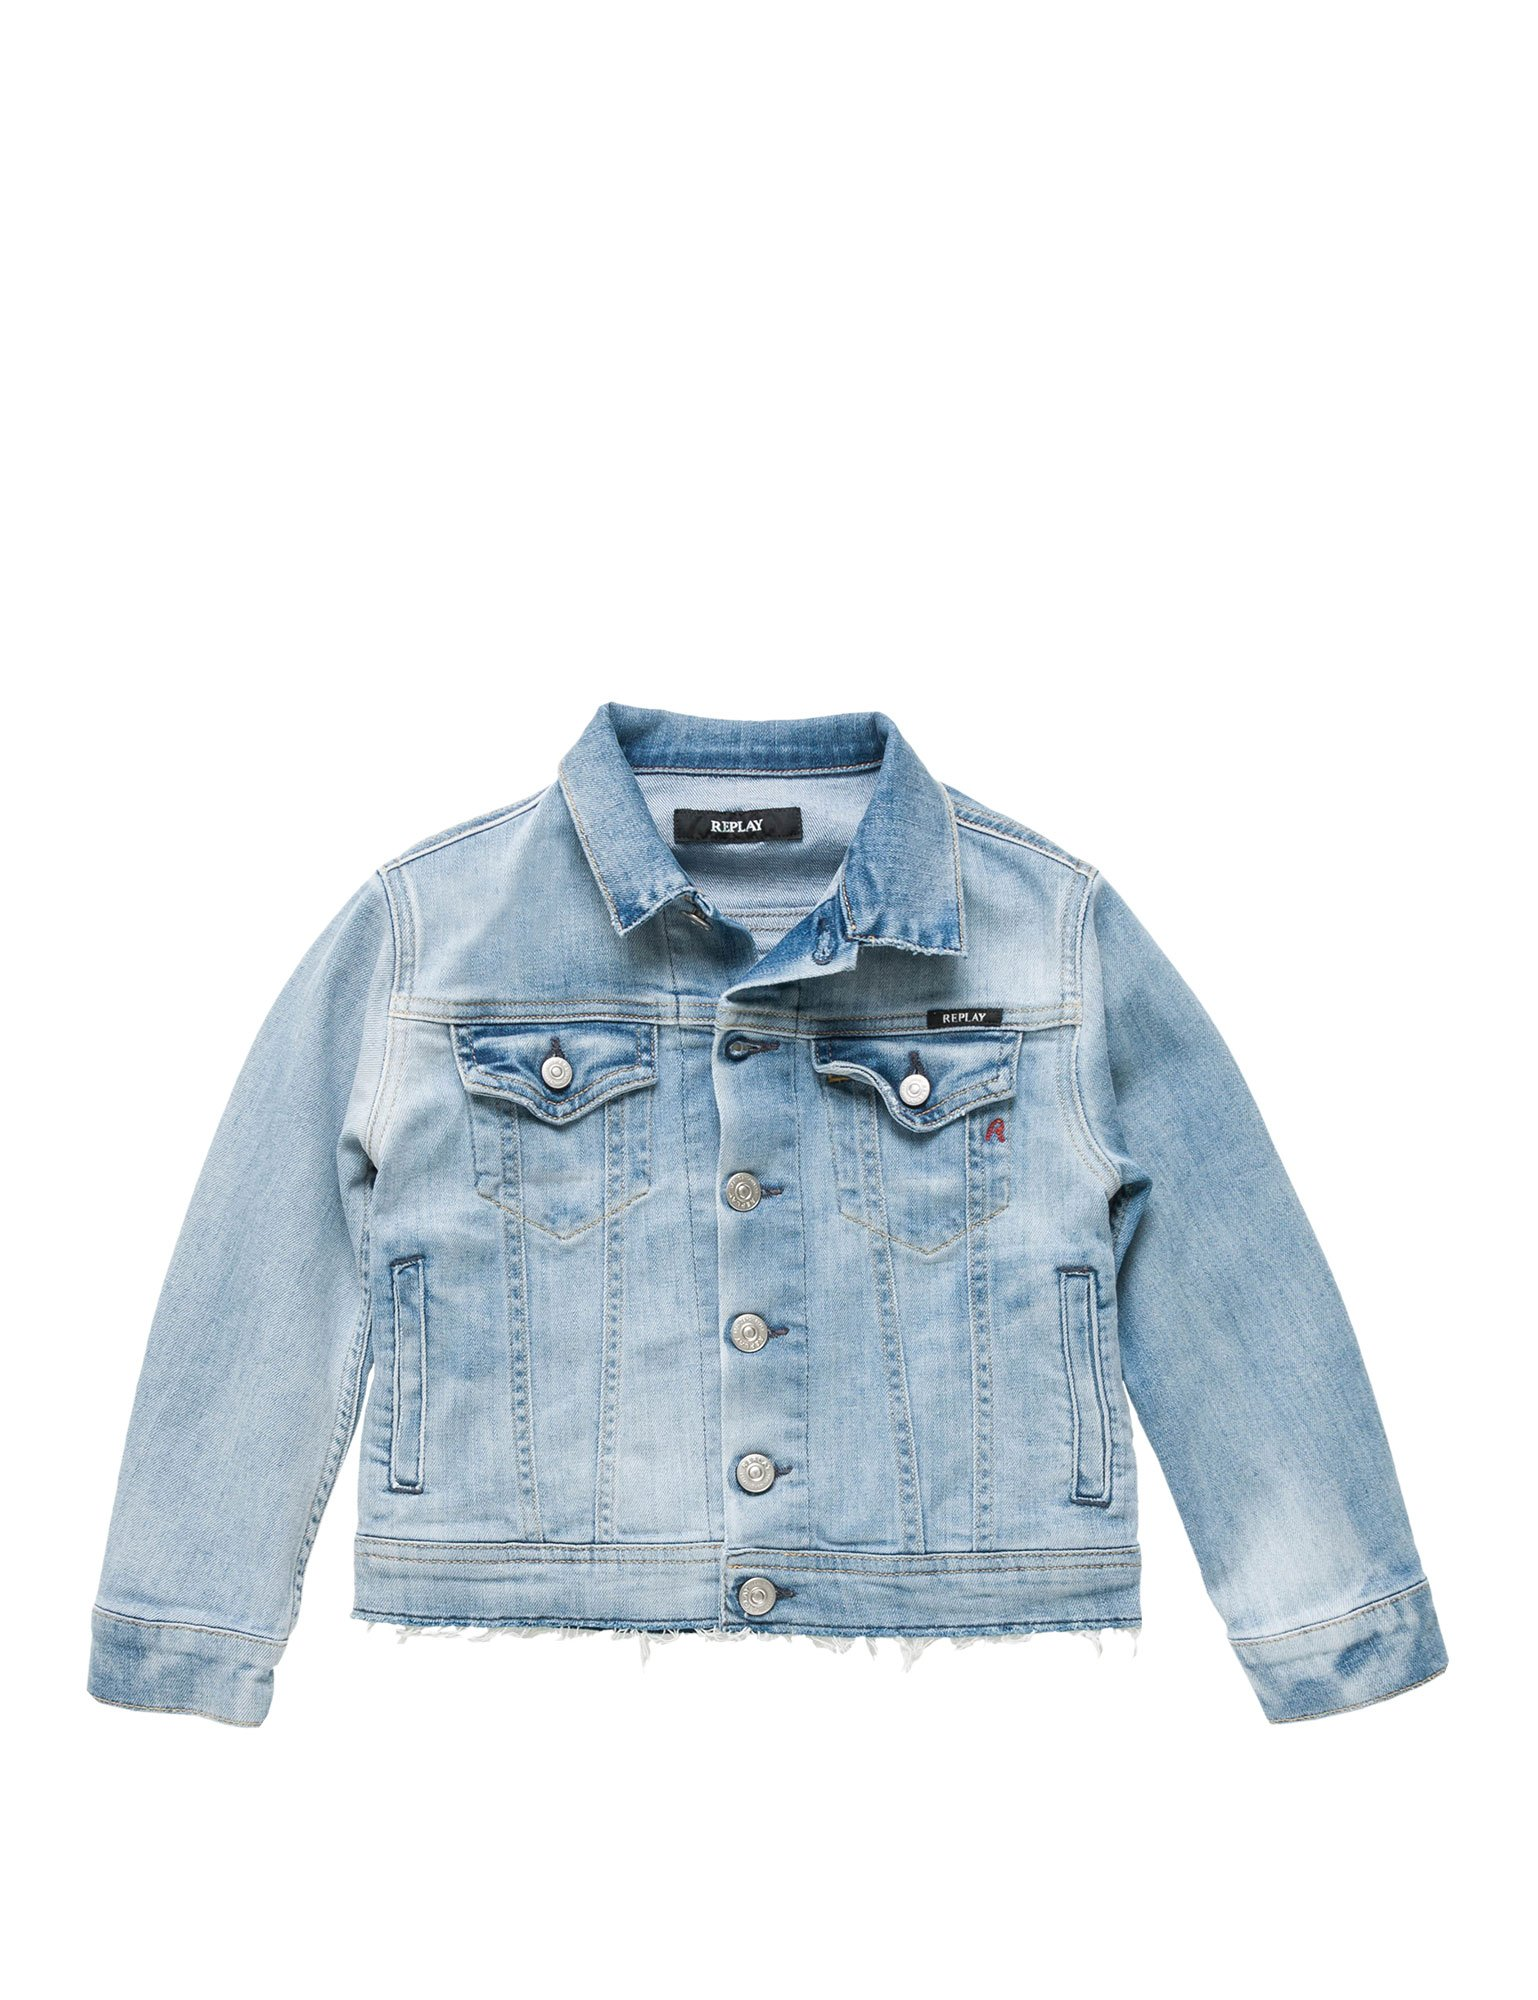 Replay Deep Comfort Girl's Jacket Blue in Size 8 Years